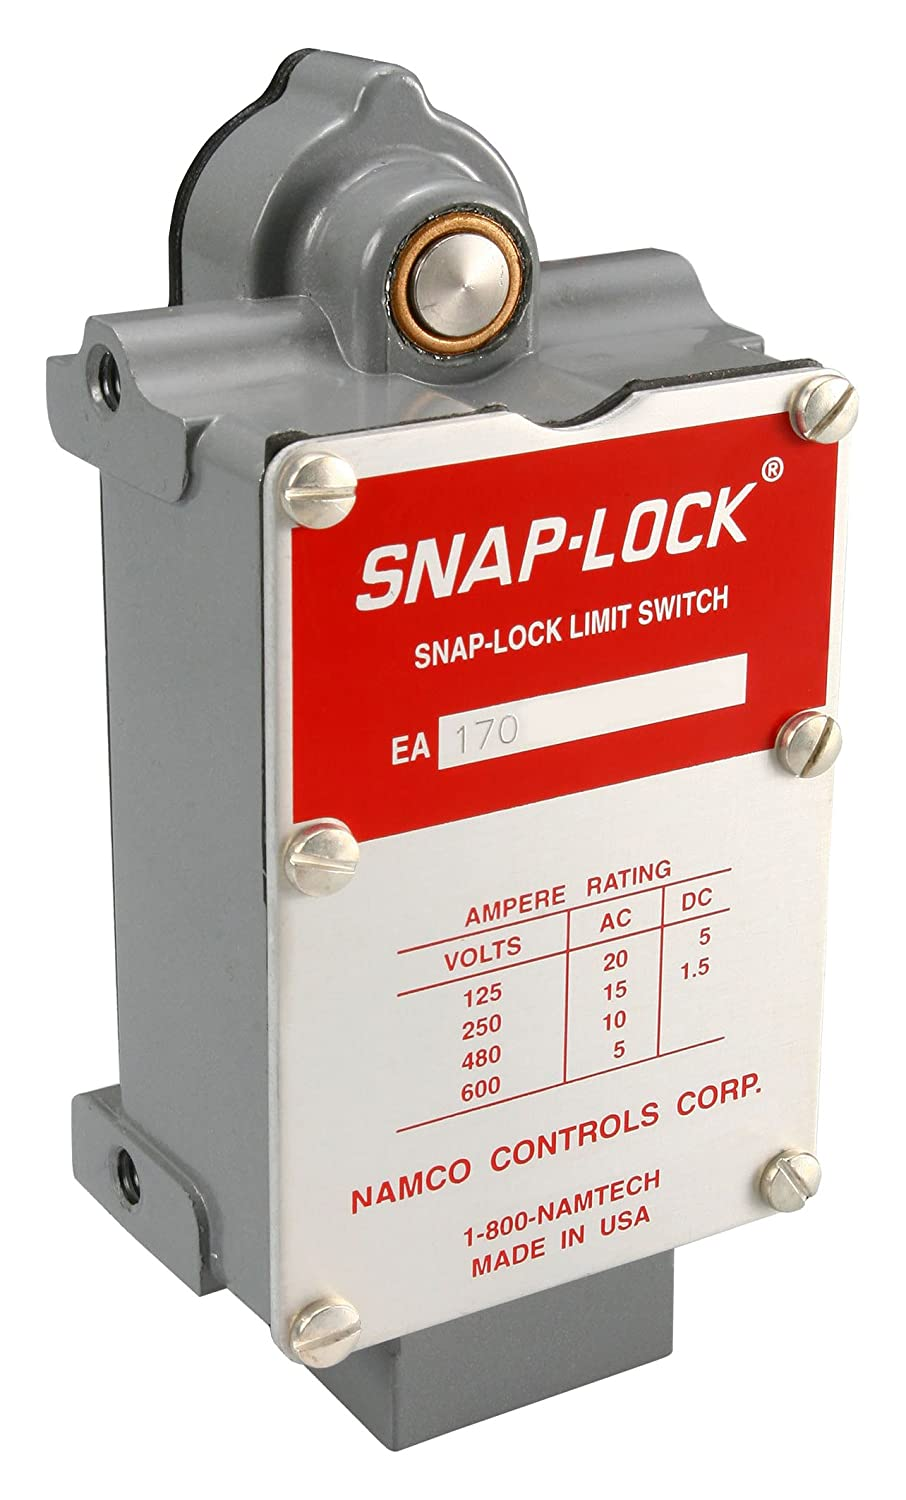 NAMCO EA170-11100 Double Pole Max 54% OFF Limit wi Switch Mounting Dedication Standard